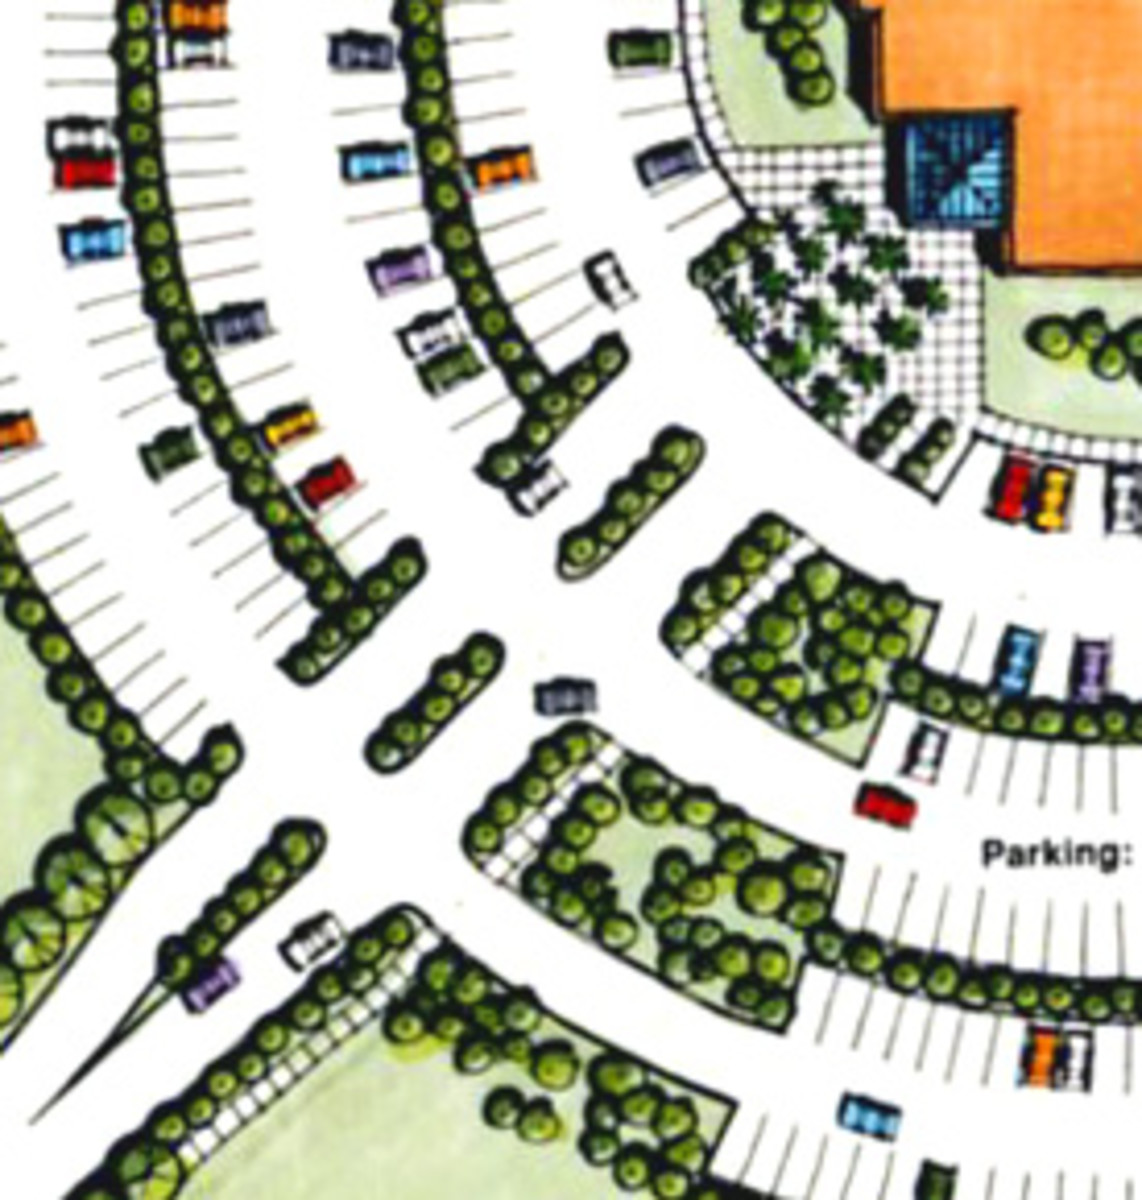 Designing Parking Lots